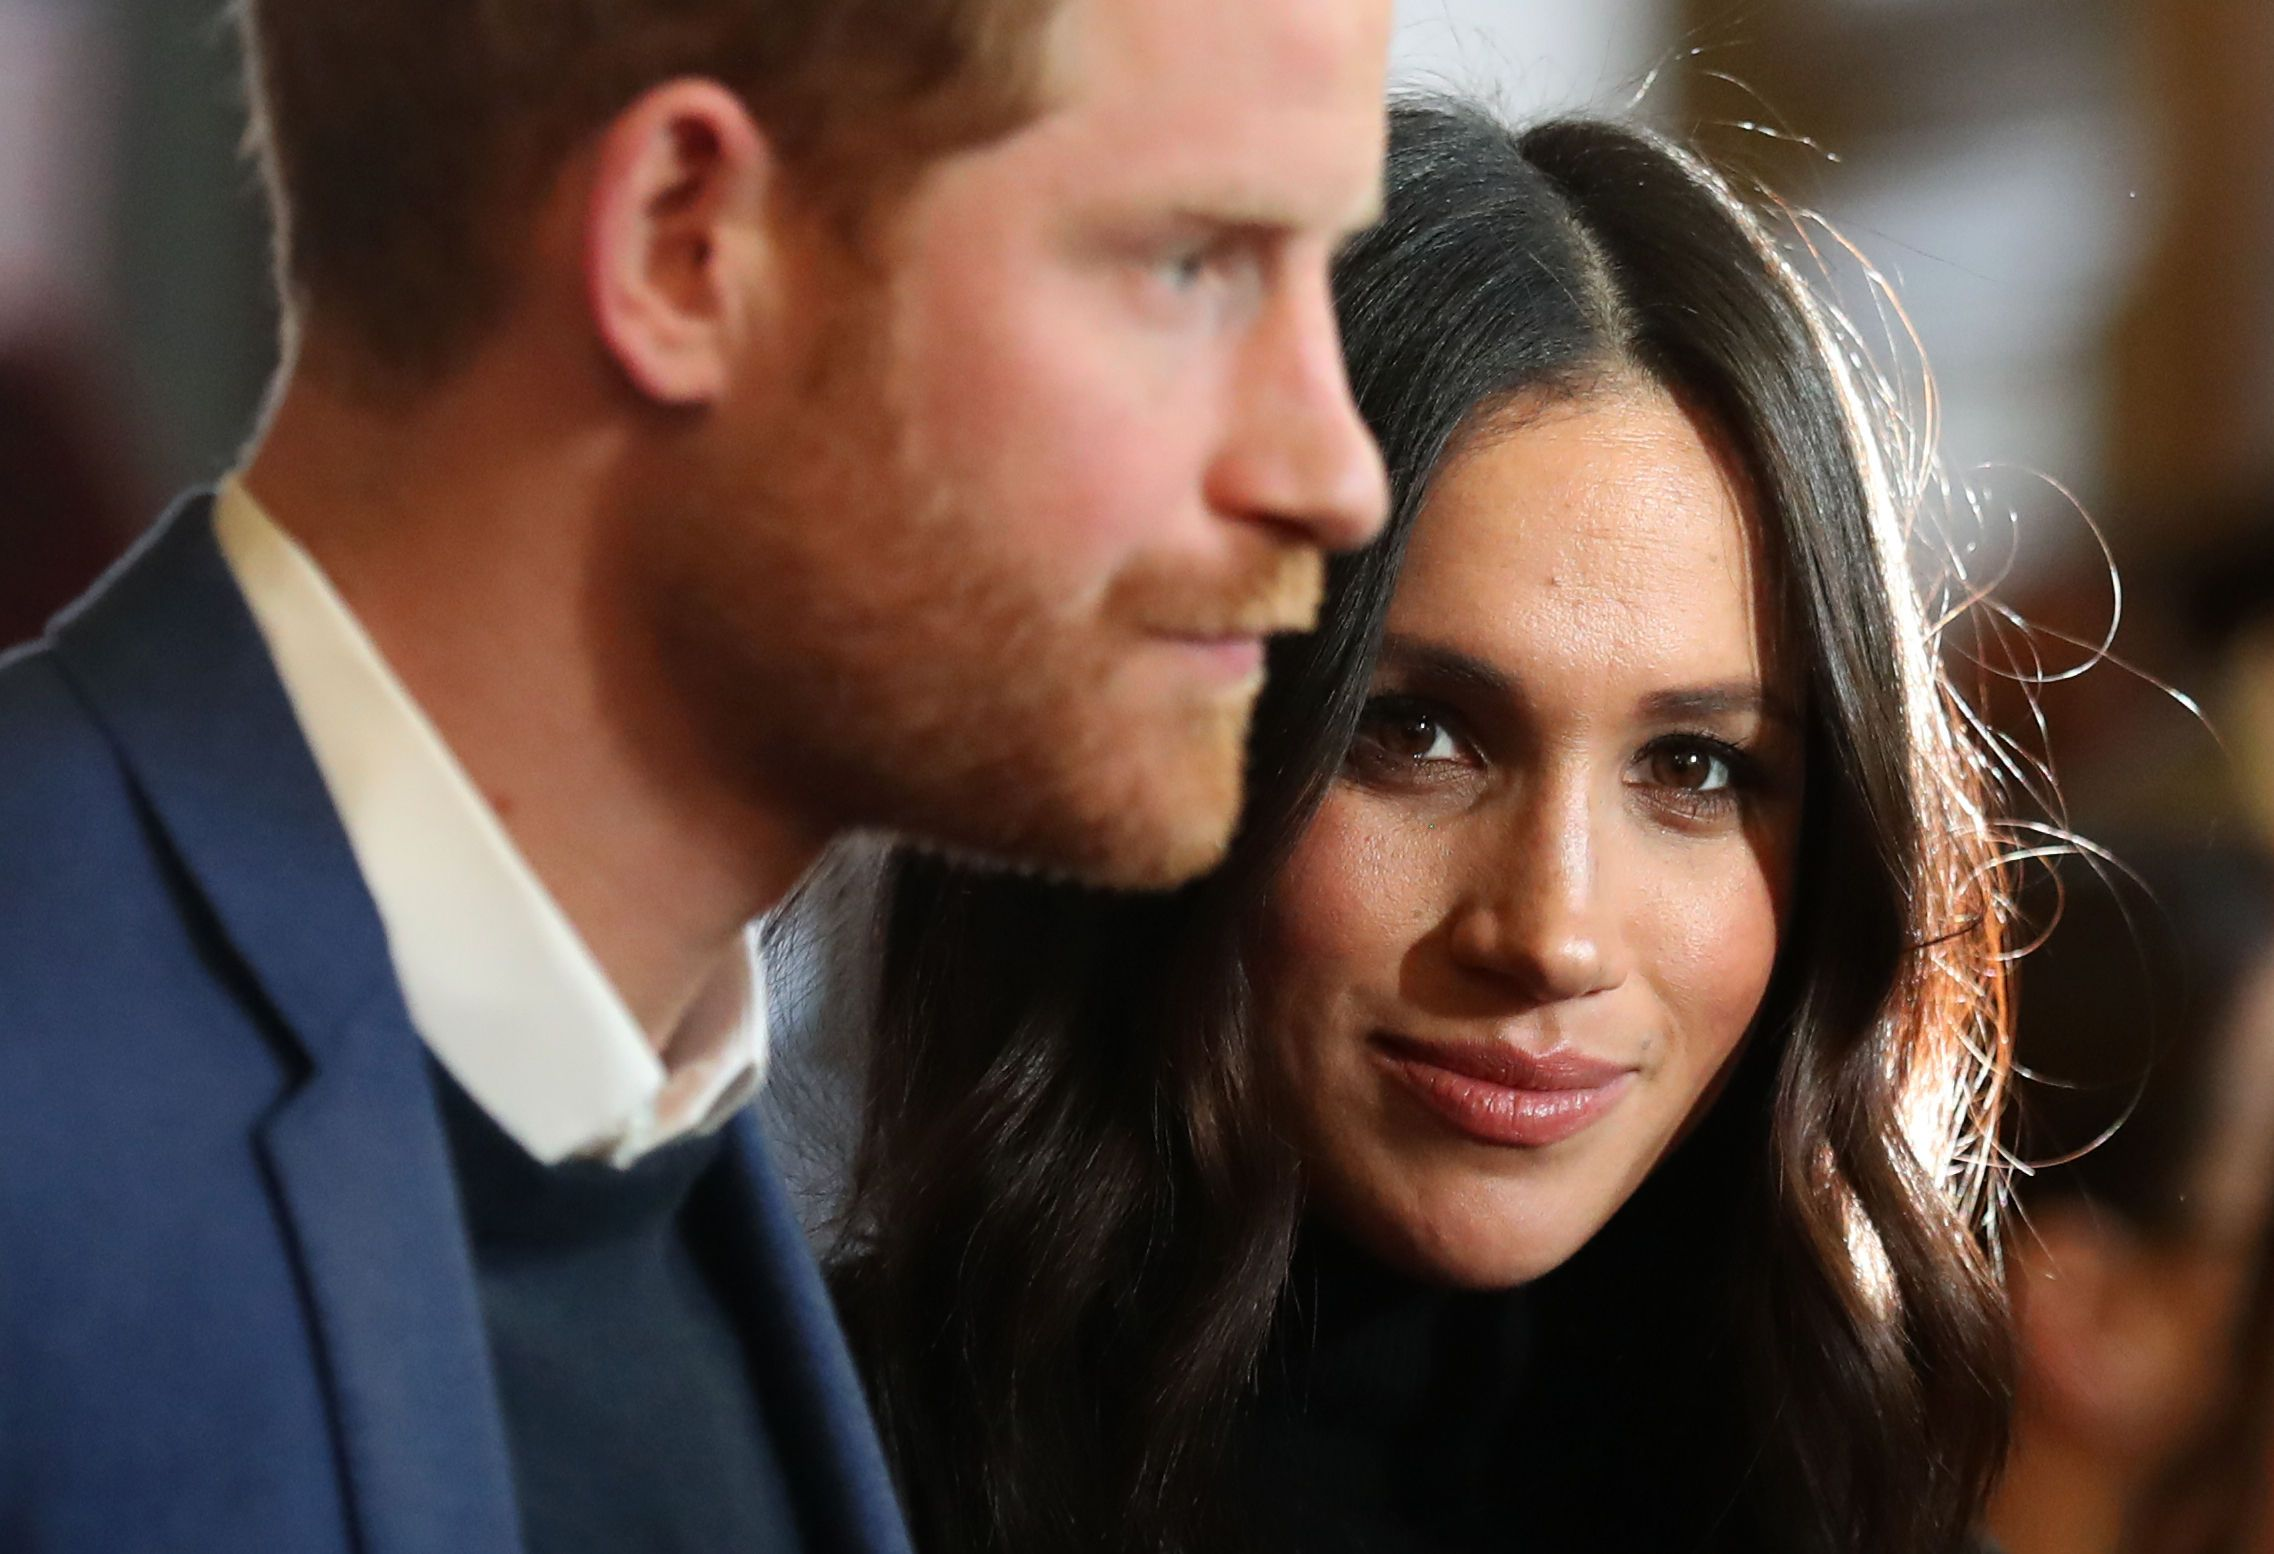 Meghan Markle Looks Cozy and Happy As She Steps Off a Commercial Flight